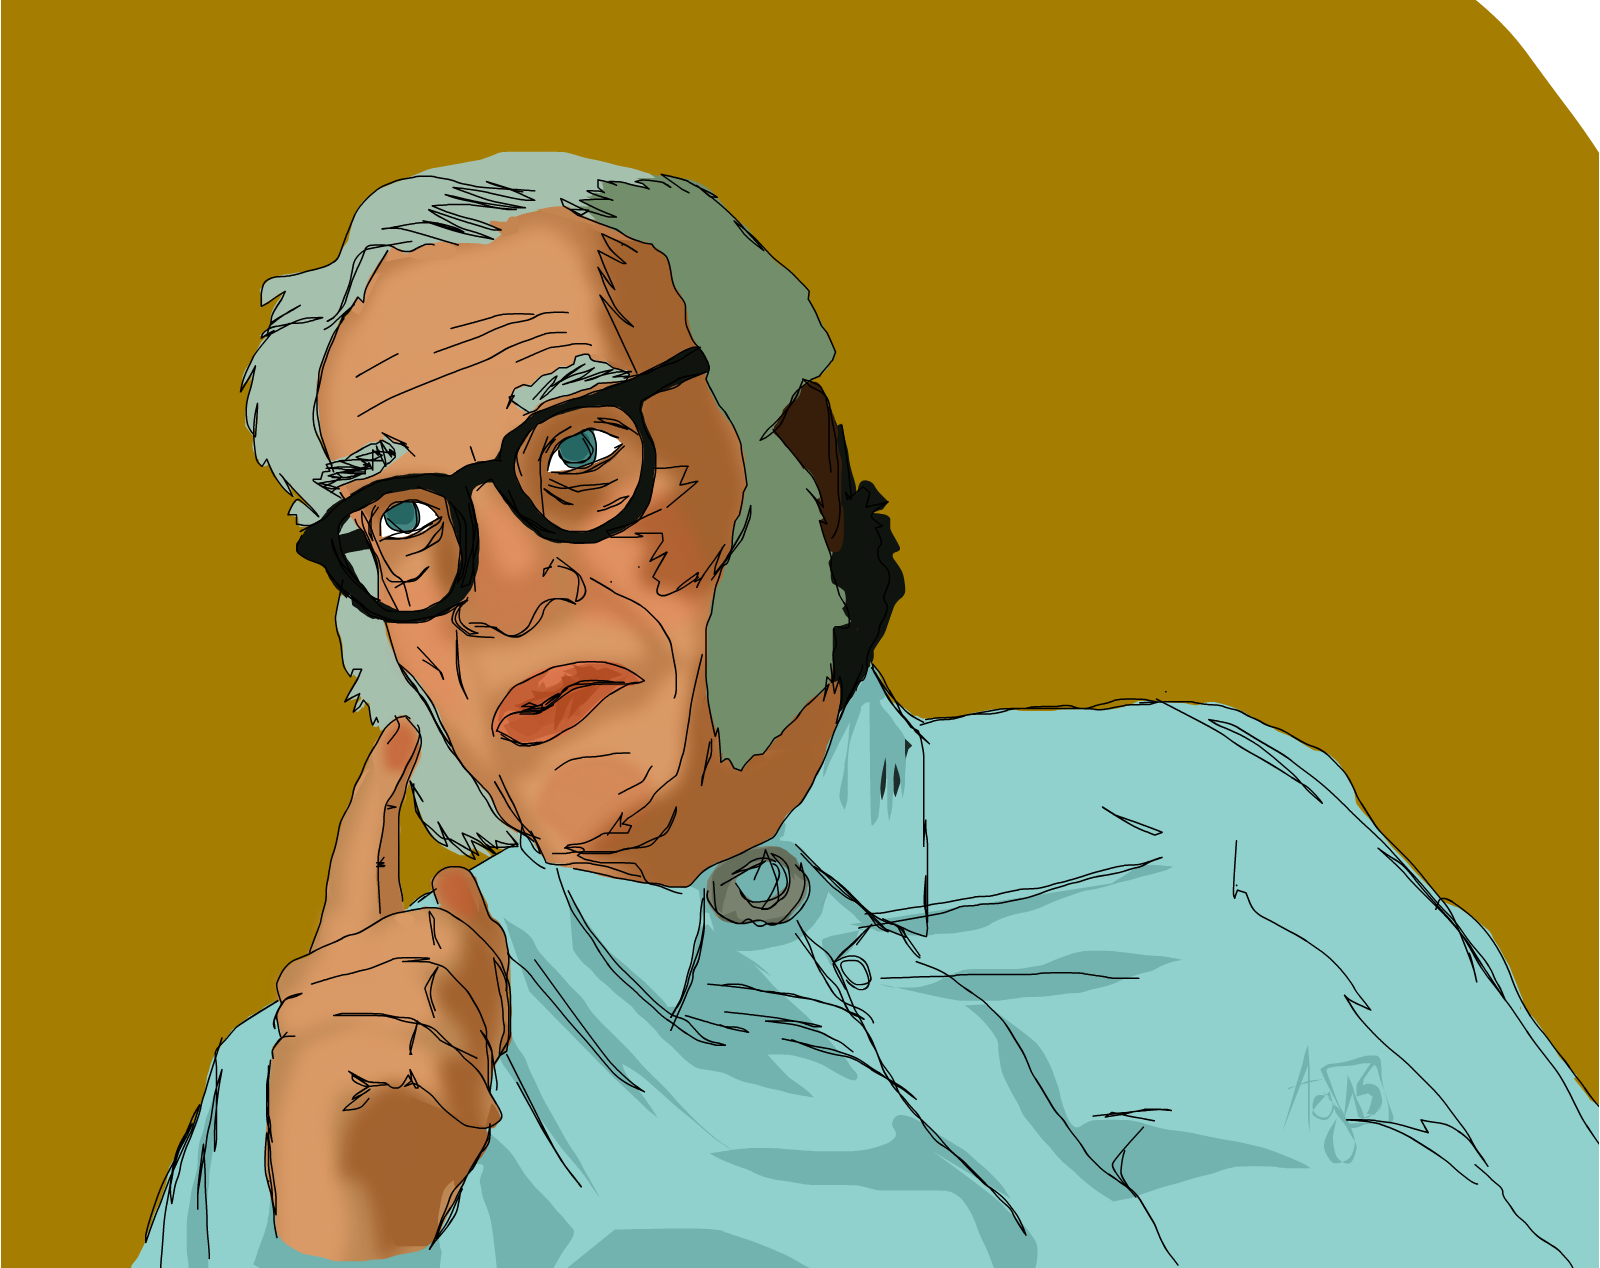 isaac asimov. © 2015 Zakeena. Licensed under  CC-BY .